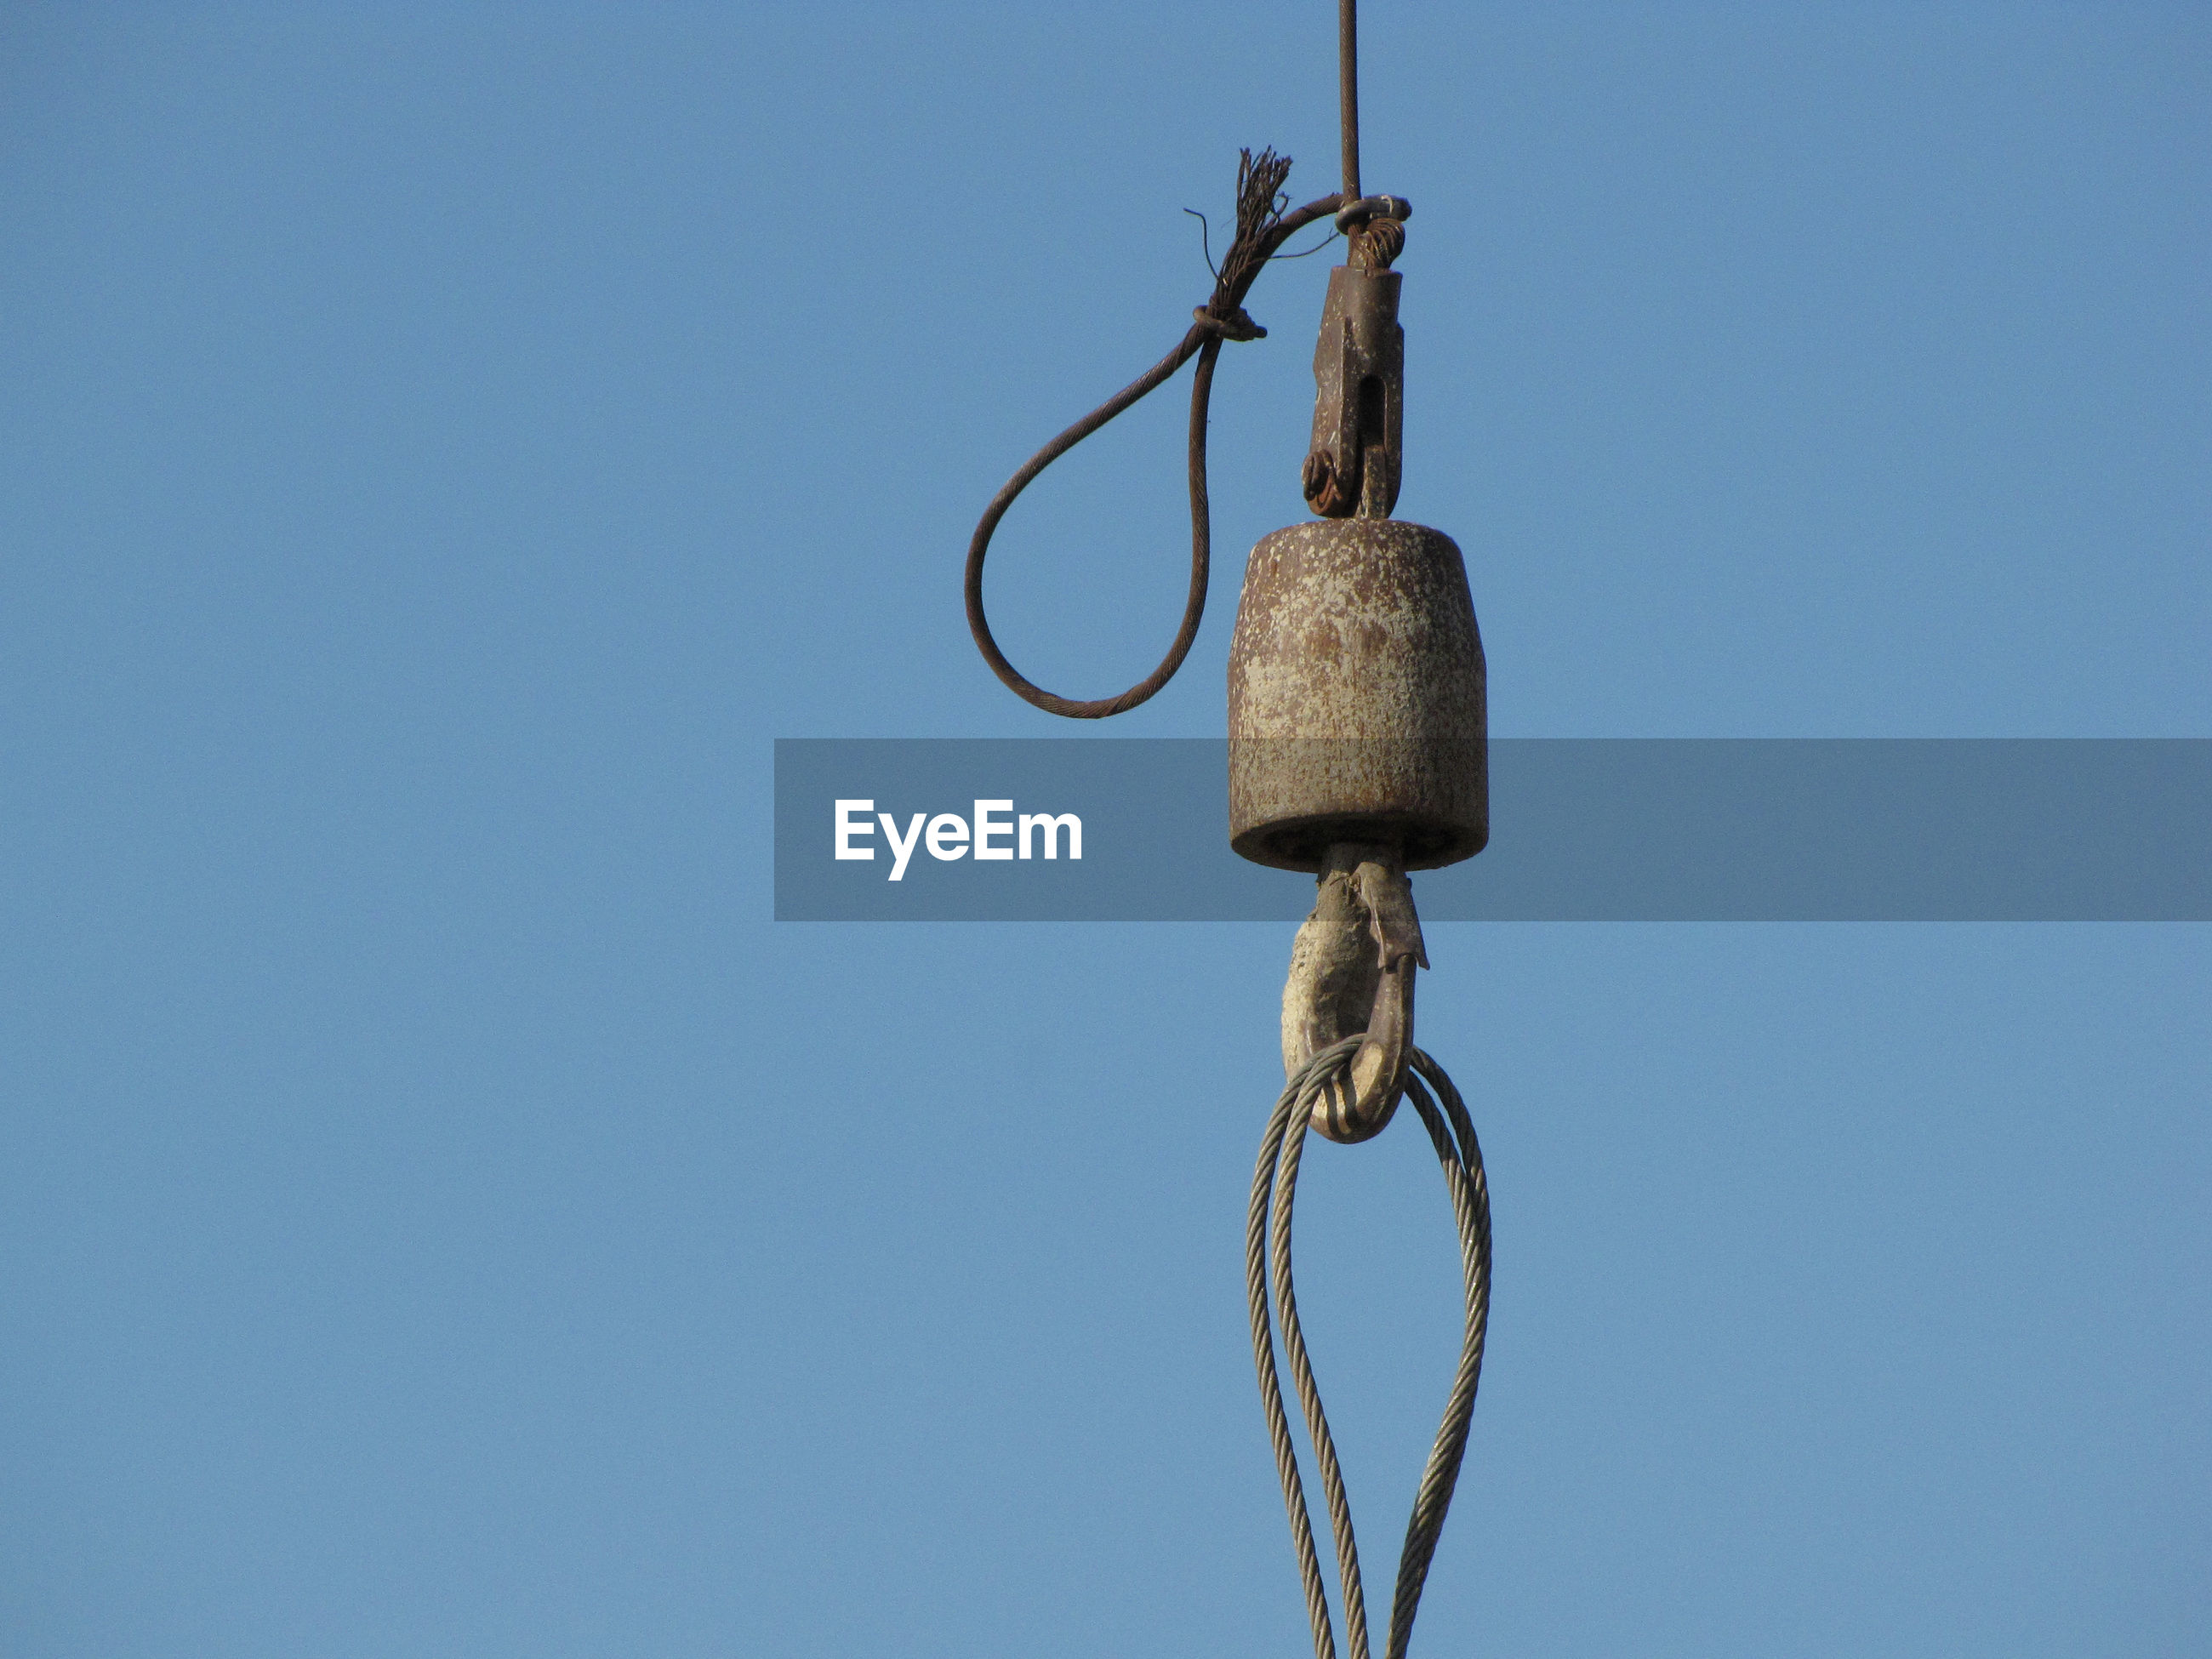 LOW ANGLE VIEW OF ROPE TIED UP AGAINST CLEAR BLUE SKY